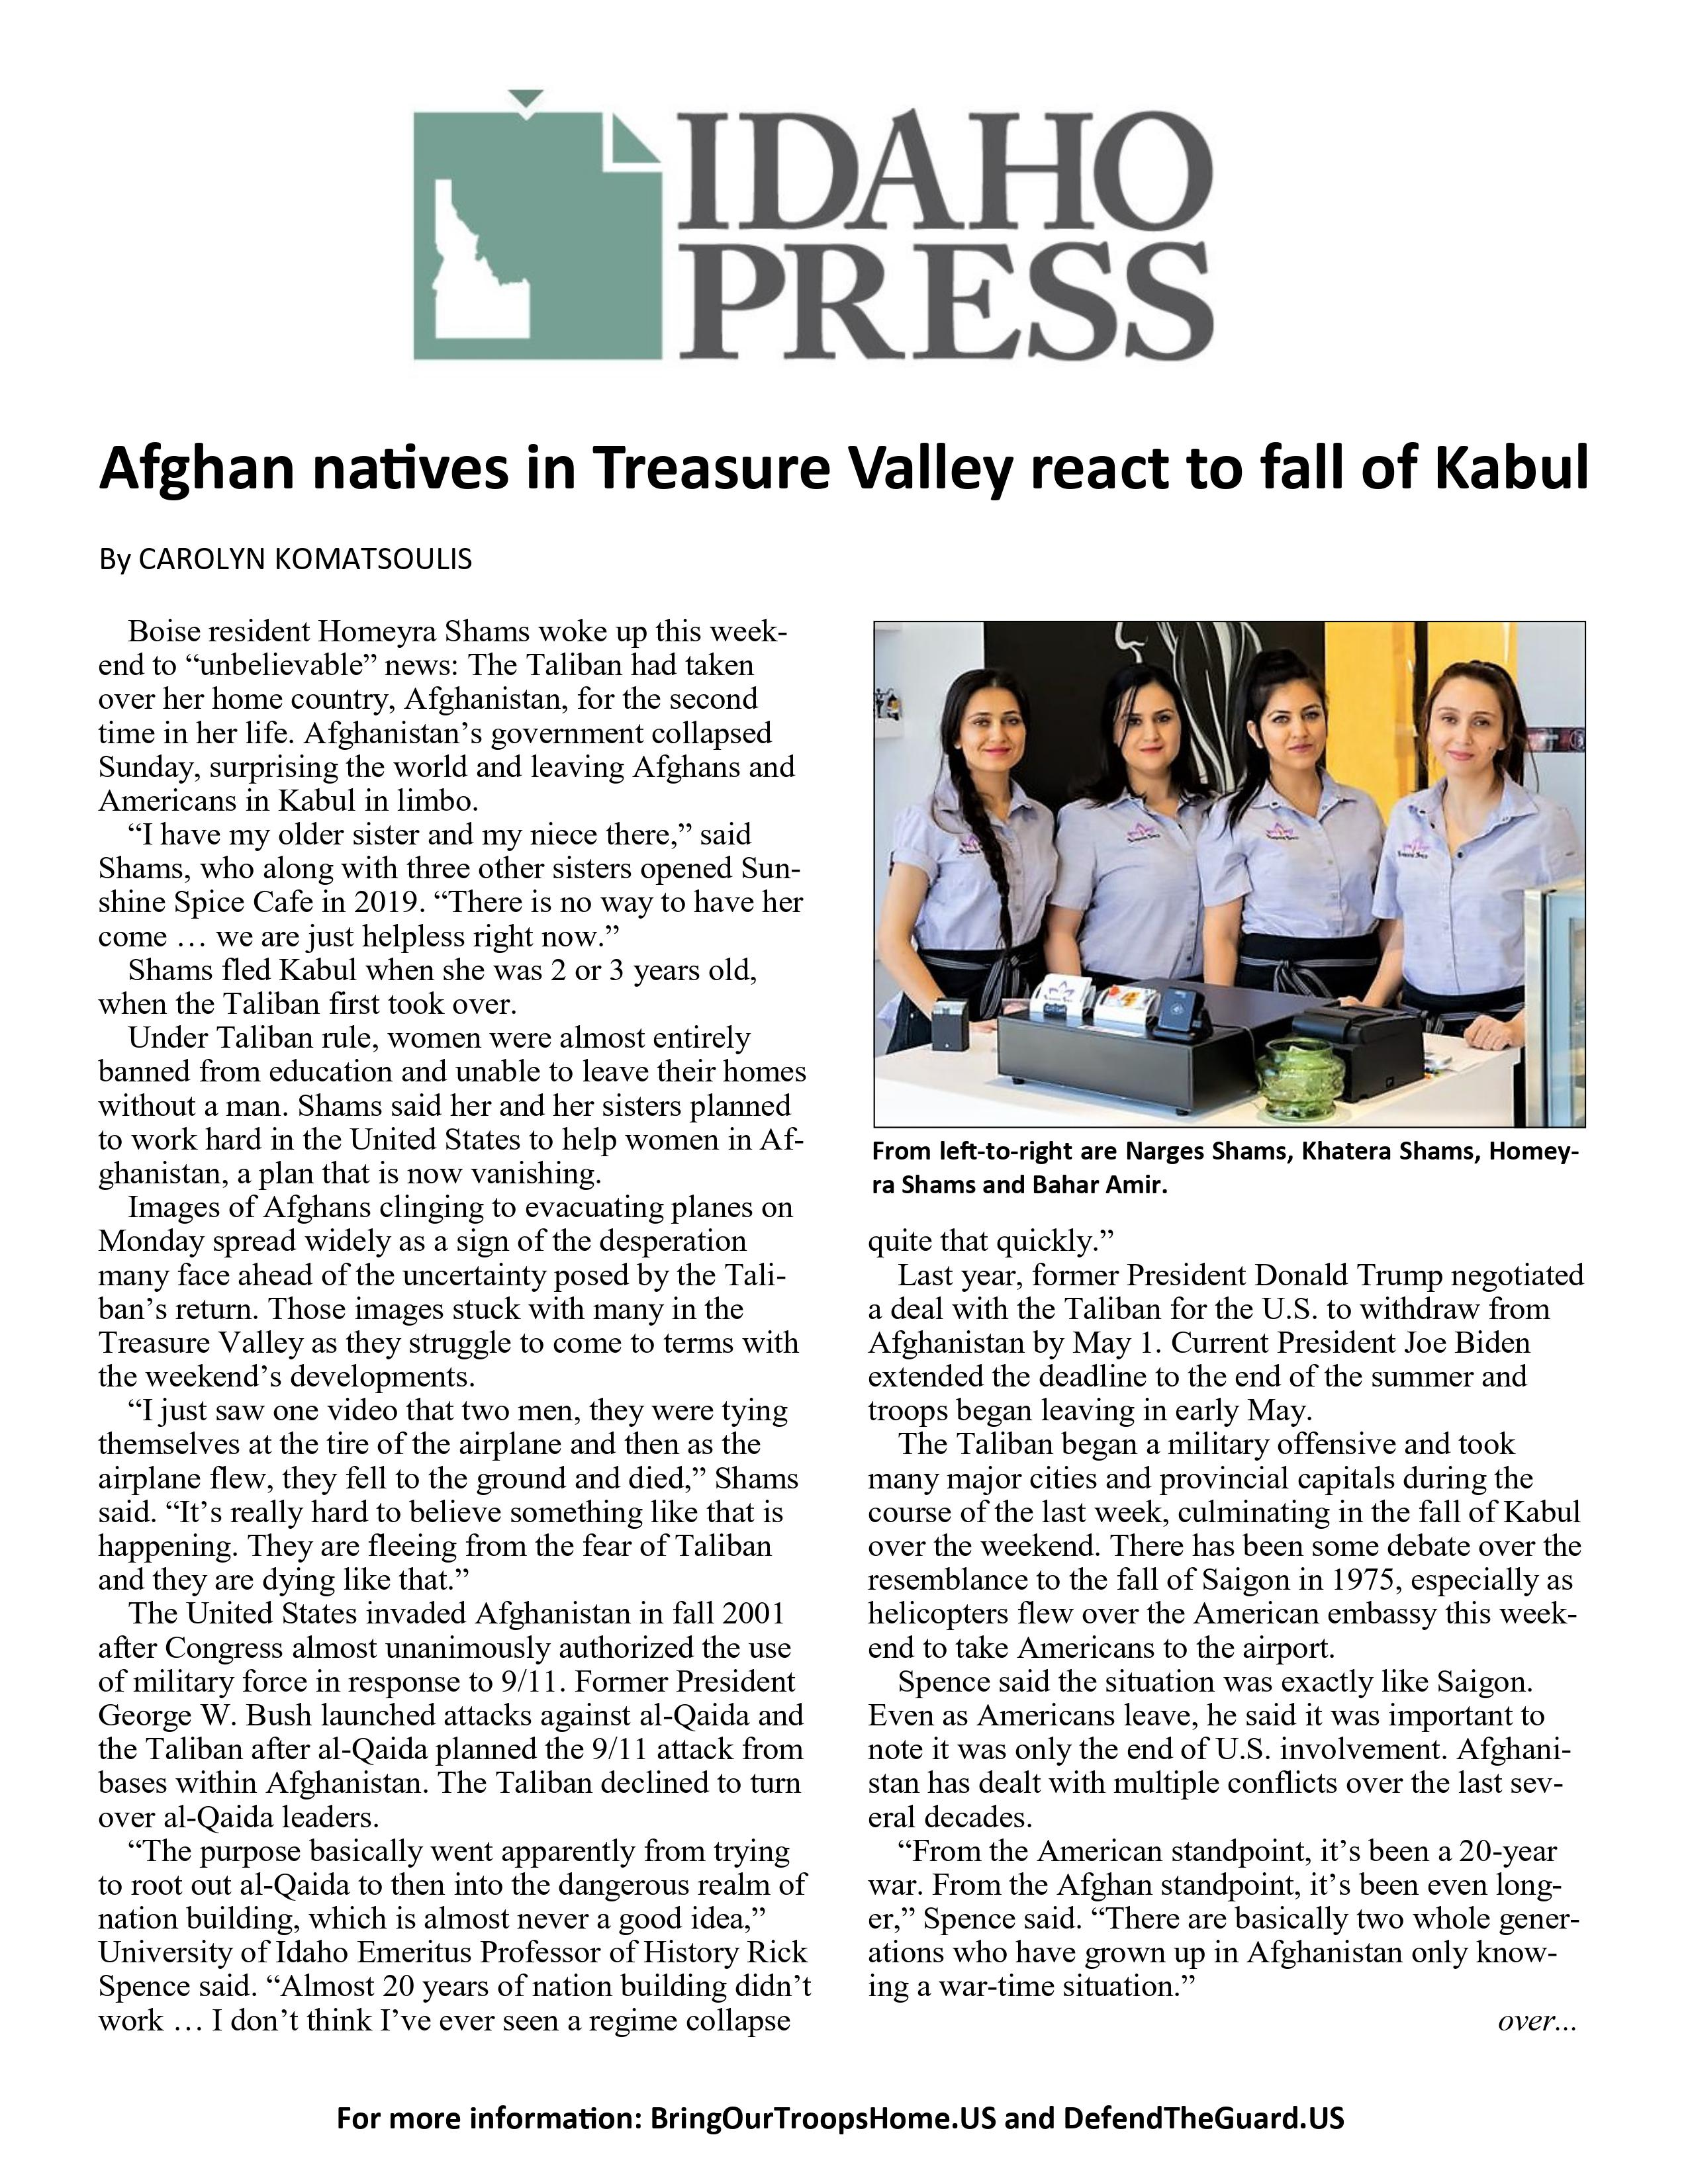 Afghan Natives in Treasure Valley React to Fall of Kabul